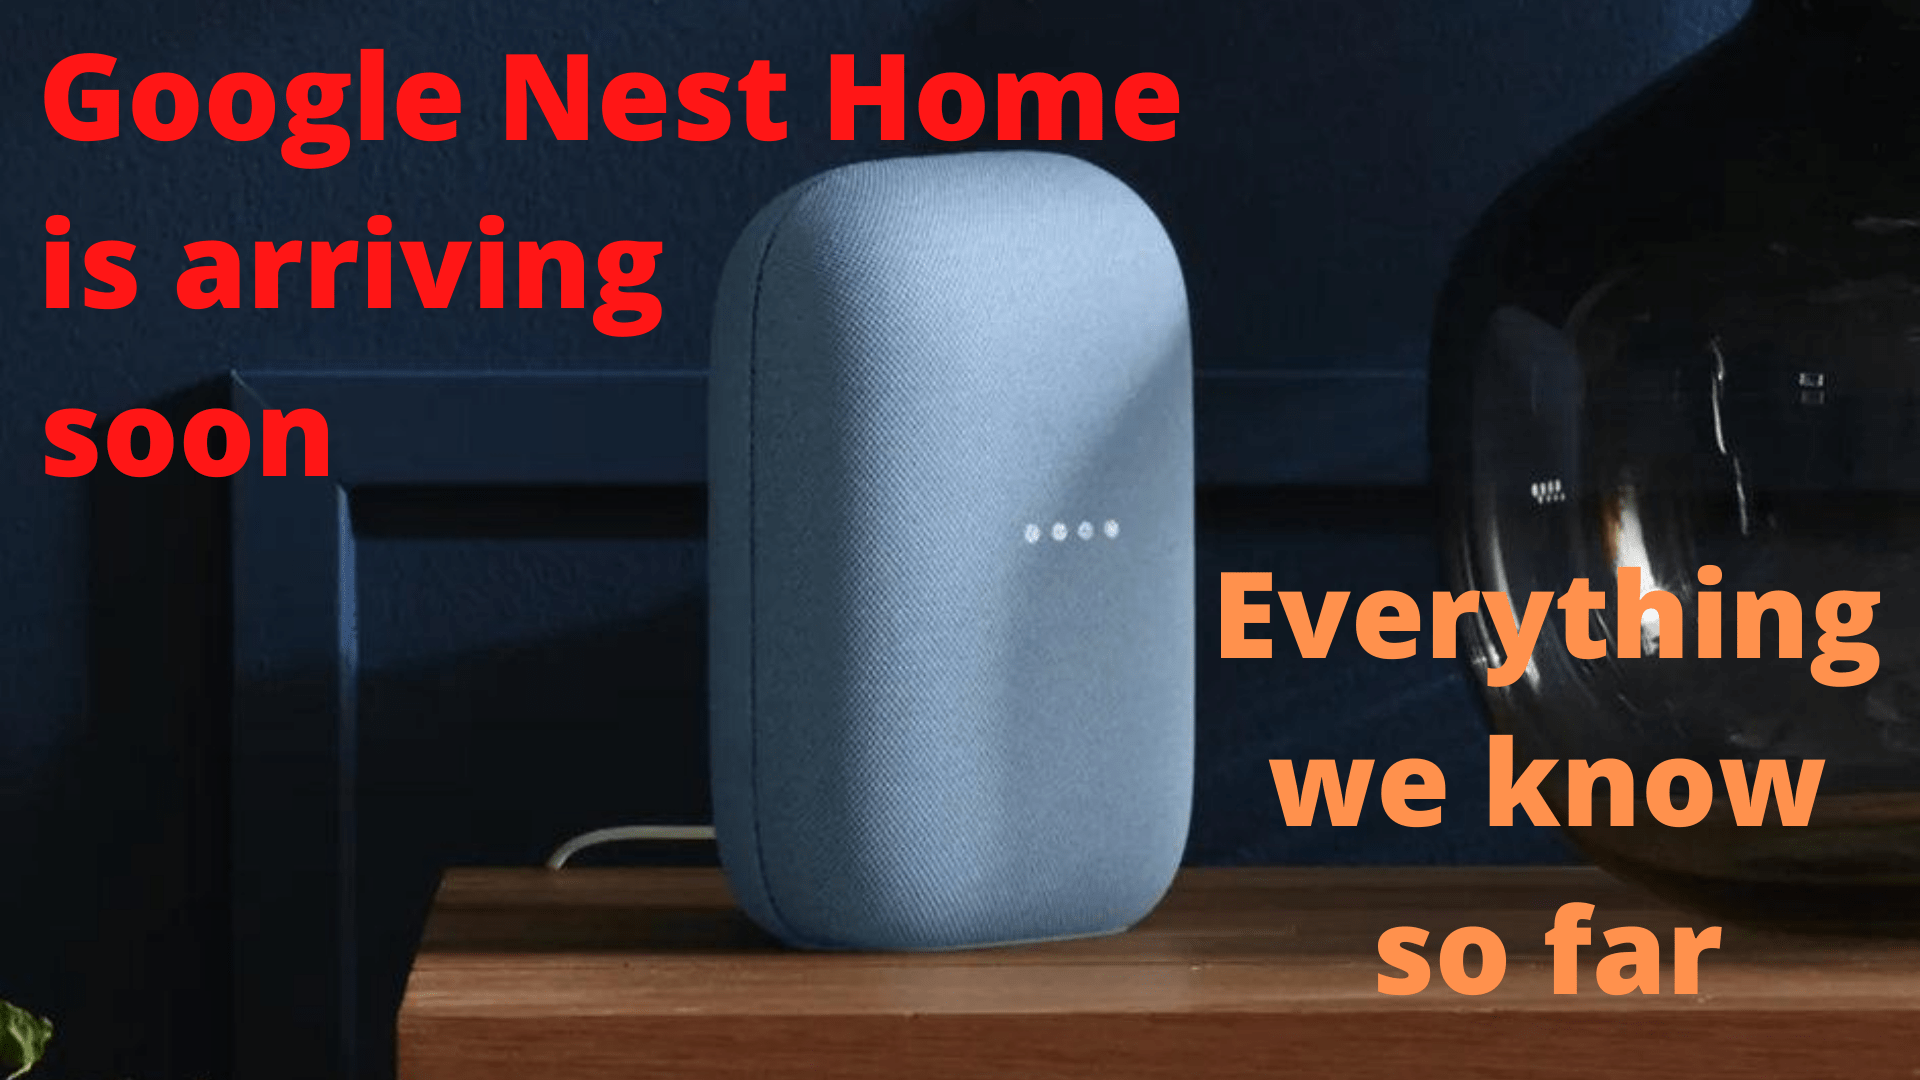 Google Nest Home is arriving soon